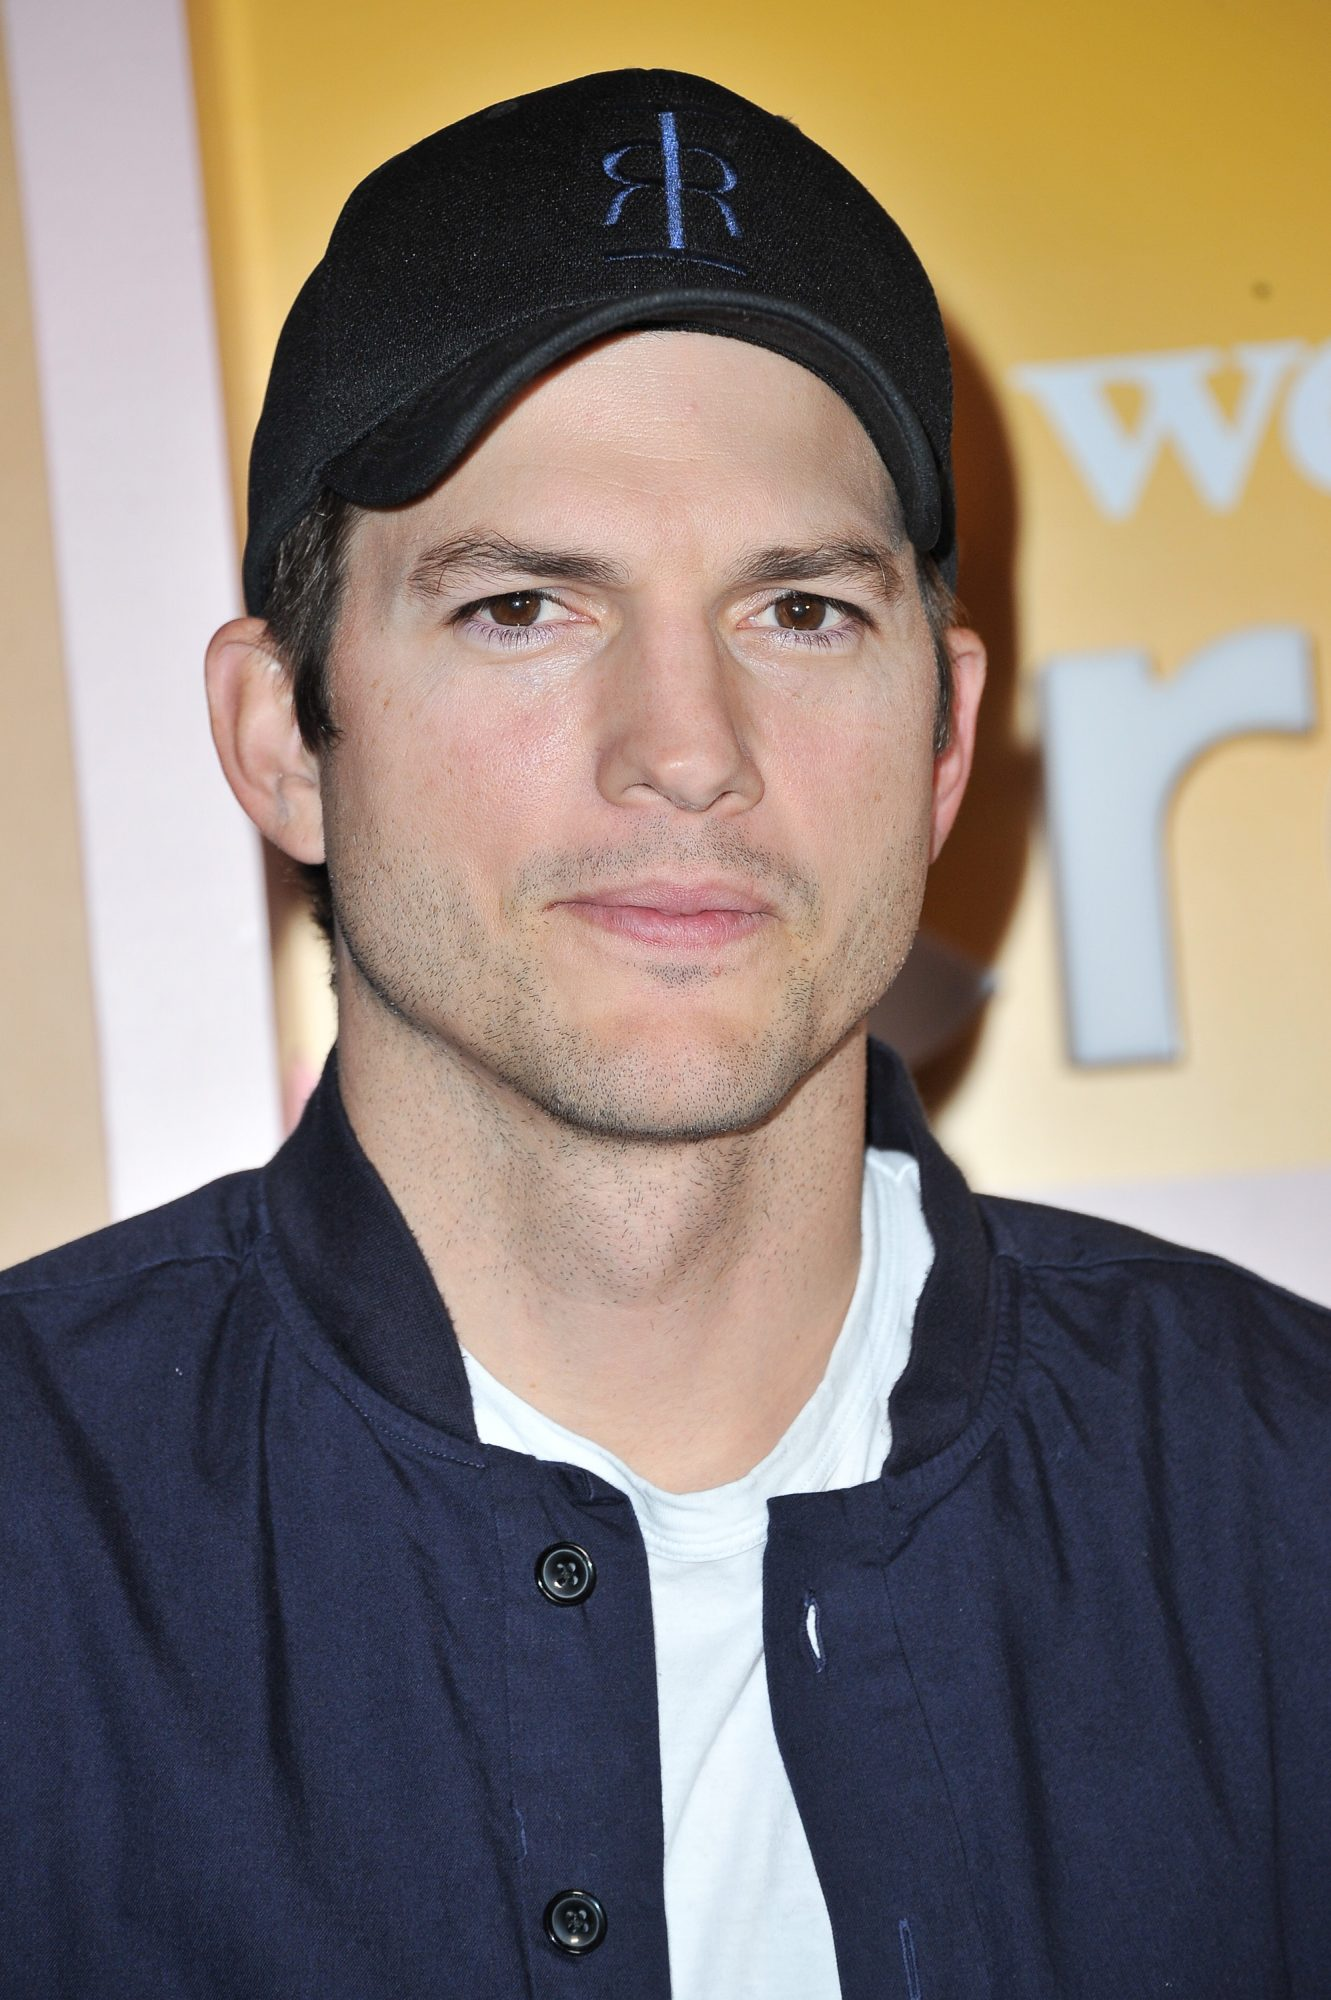 Is Ashton Kutcher hotter when he's clean-shaven?